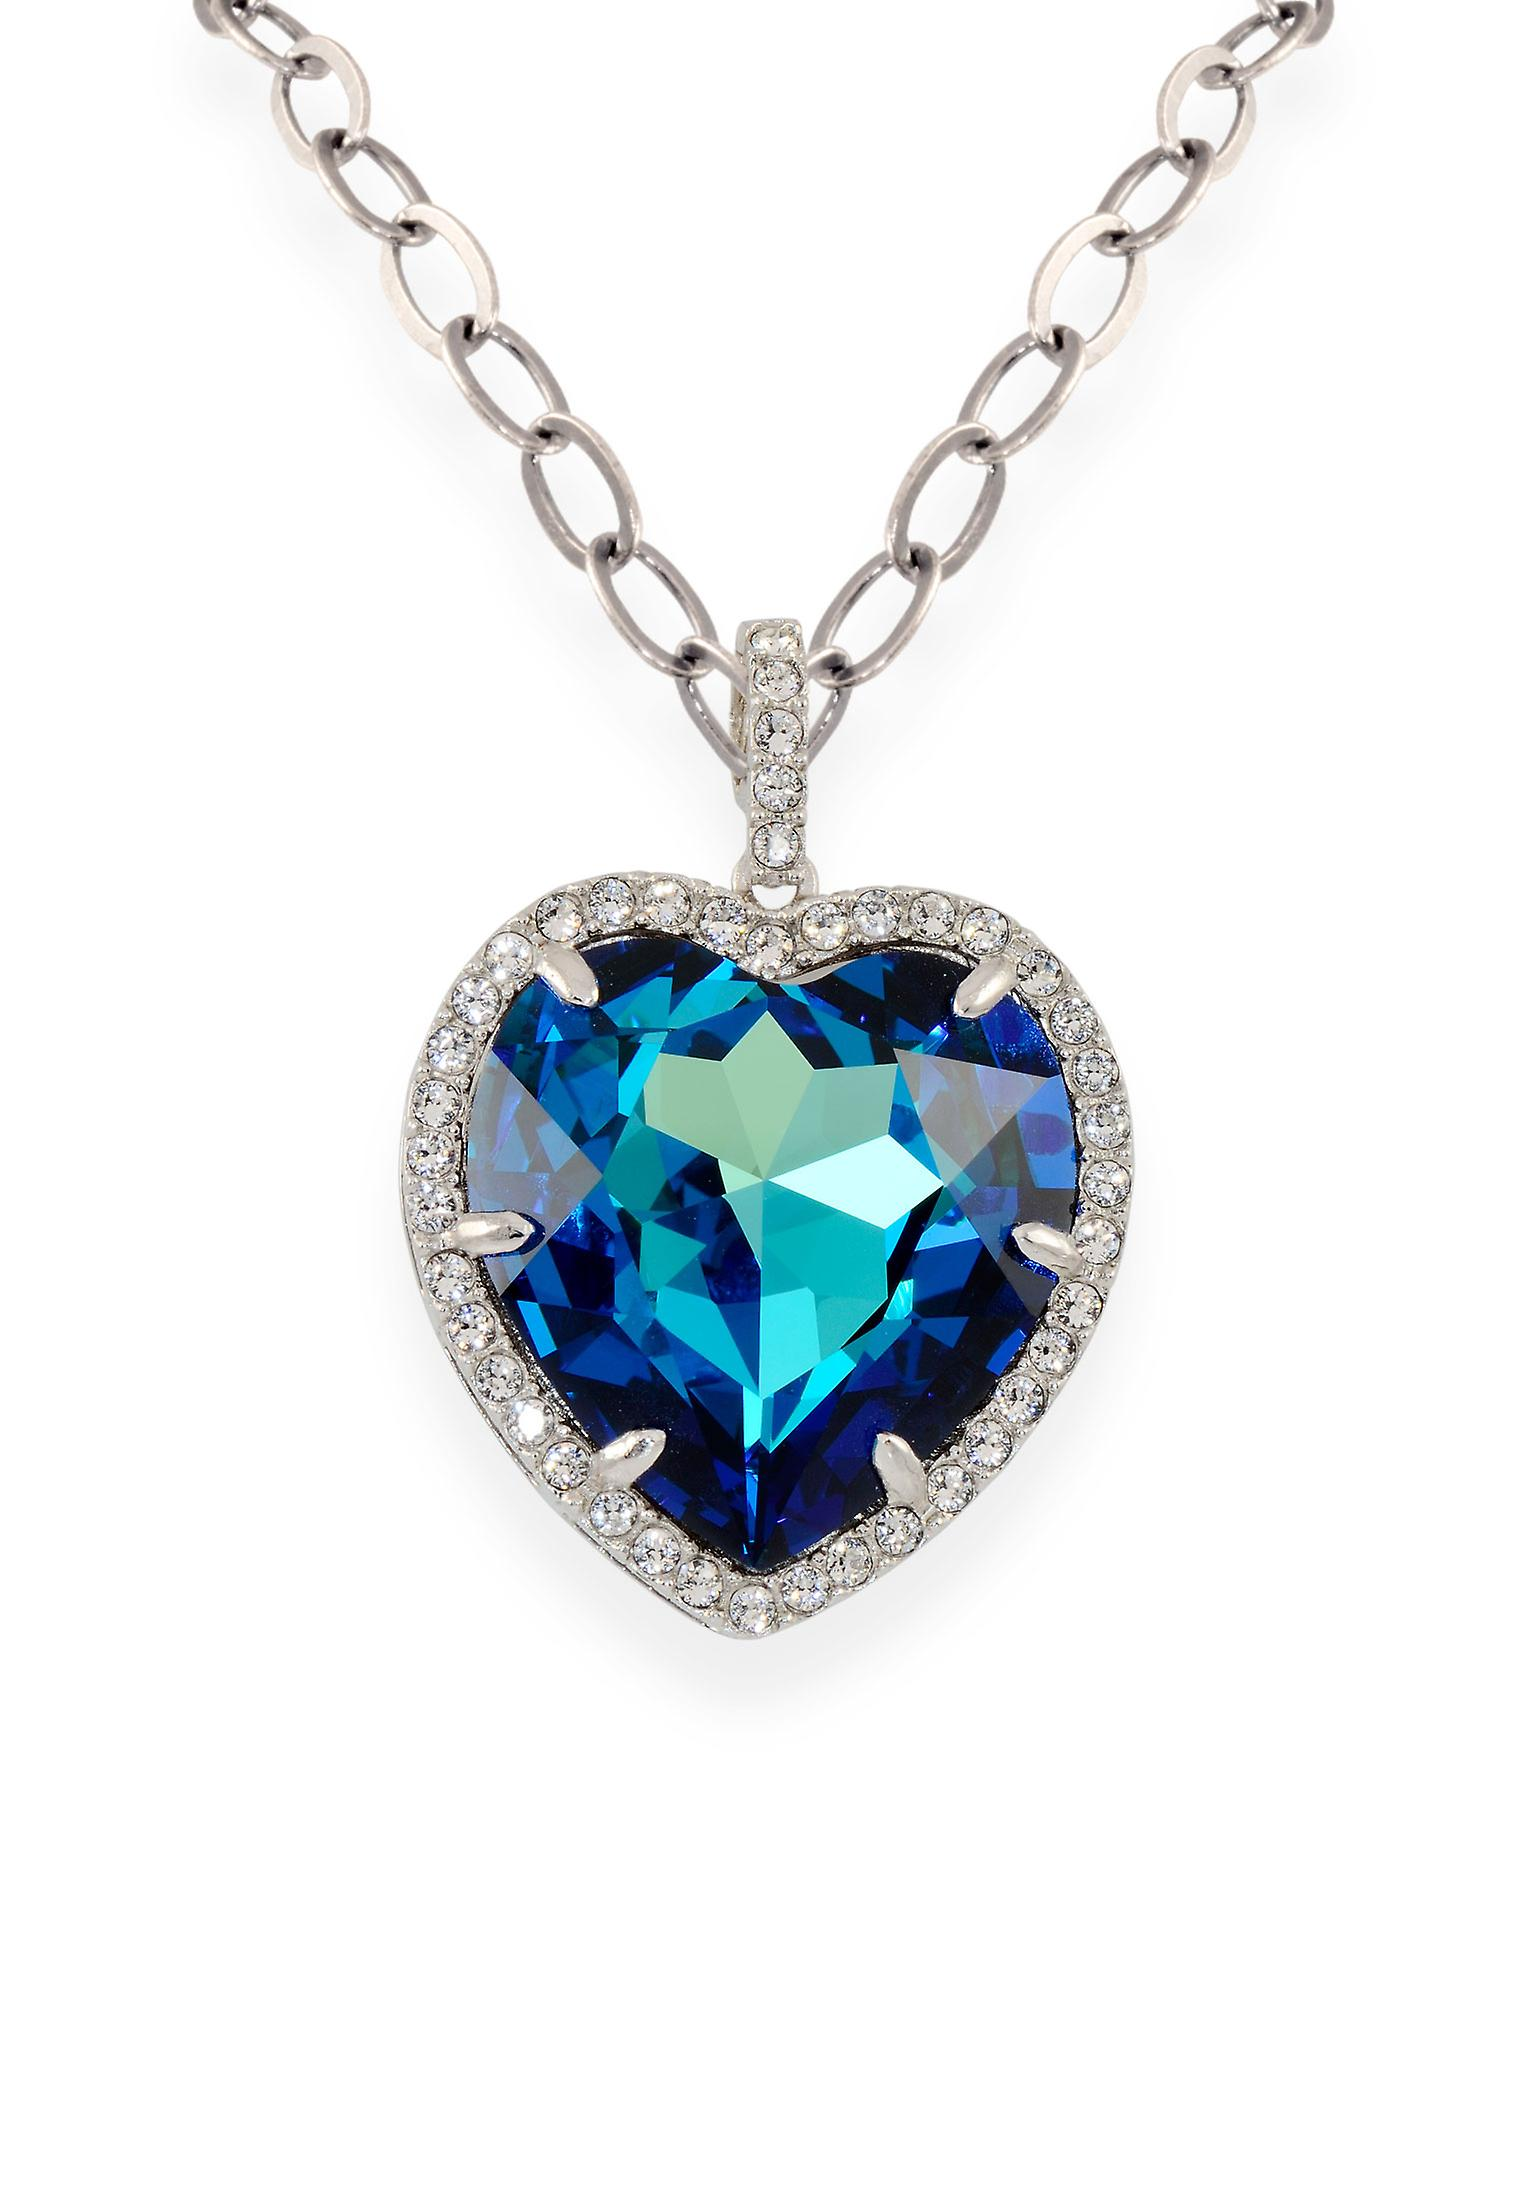 Blue pendant with crystals from Swarovski 9140